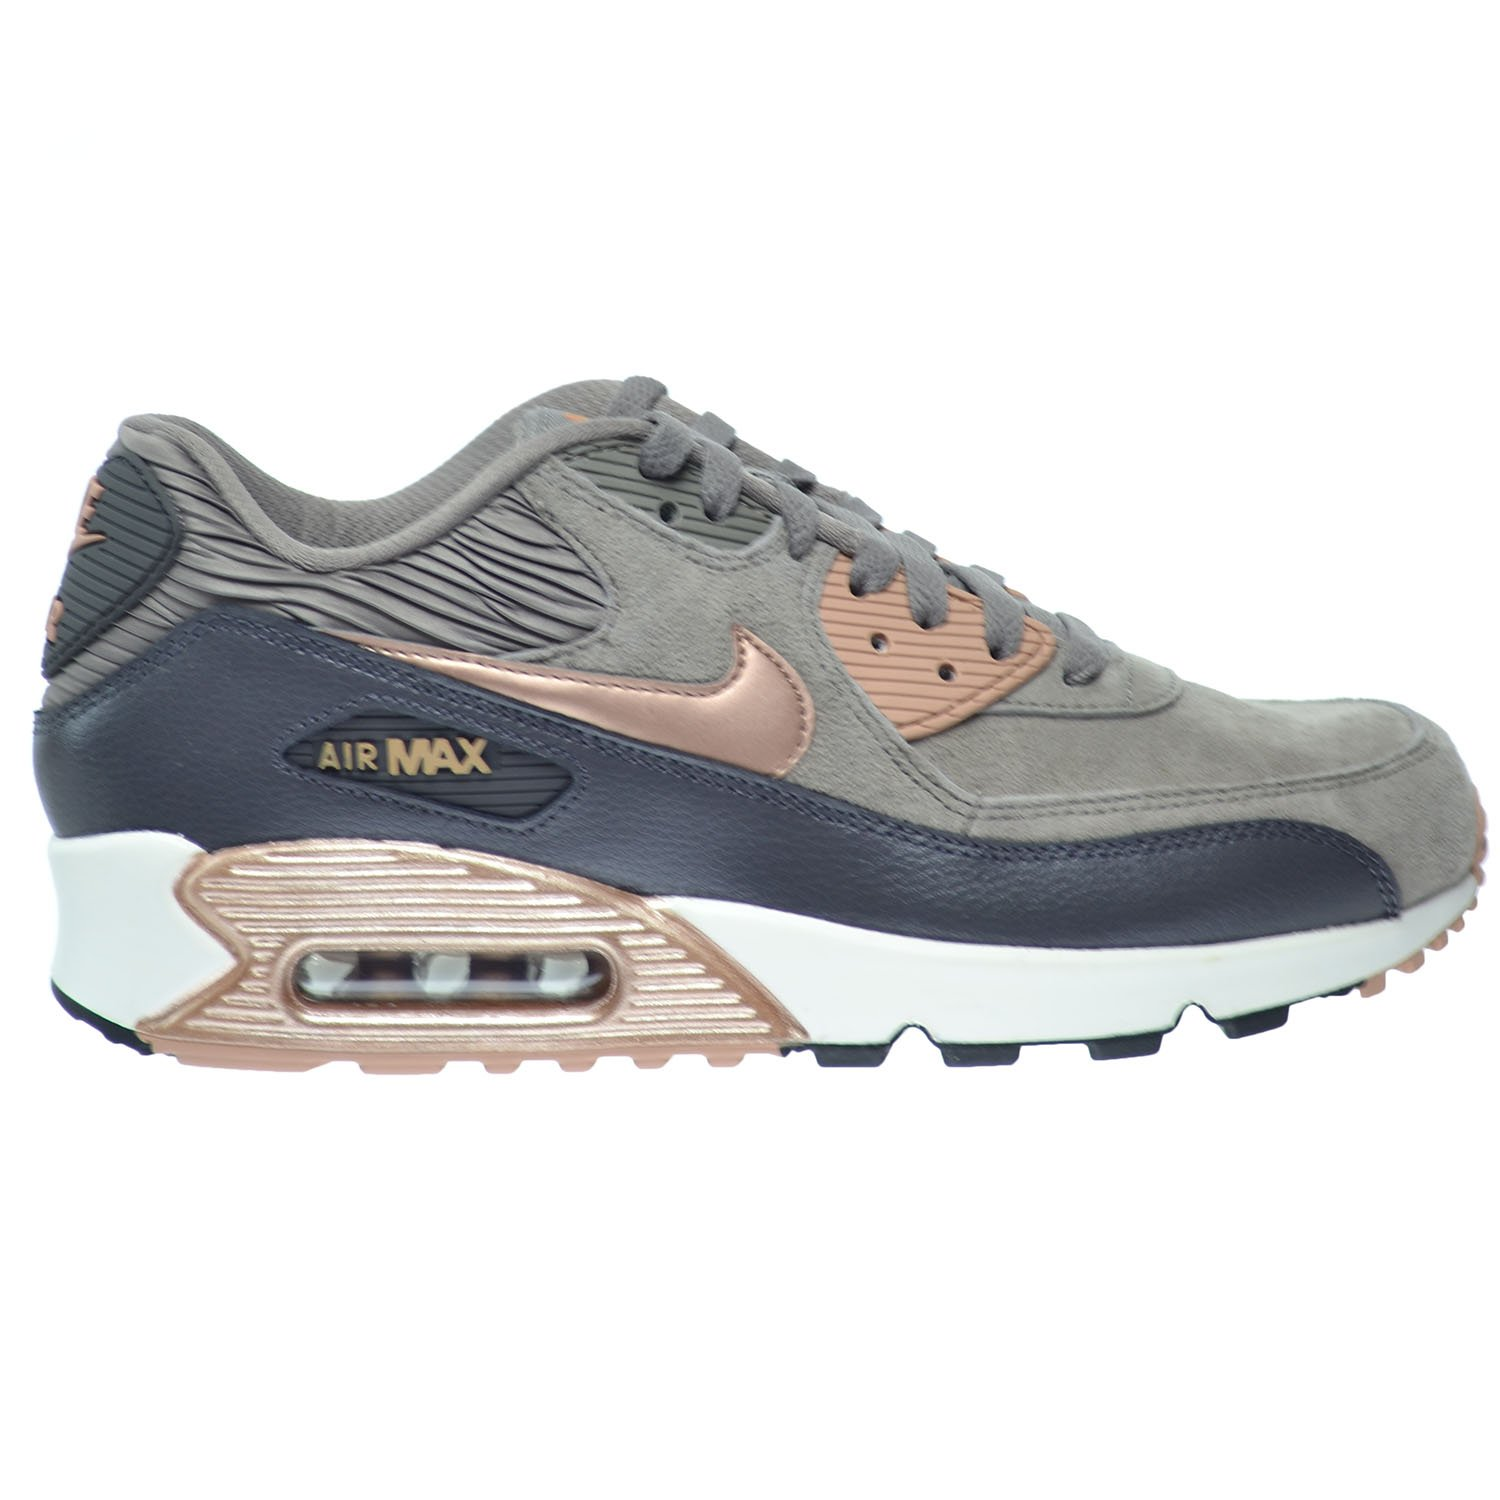 best sneakers 9448d e3ae6 Nike Air Max 90 Leather Women  Shoes Iron Metallic Red Bronze-Dark Strom  Sail 768887-201 (12 D(M) US)  Amazon.ca  Shoes   Handbags